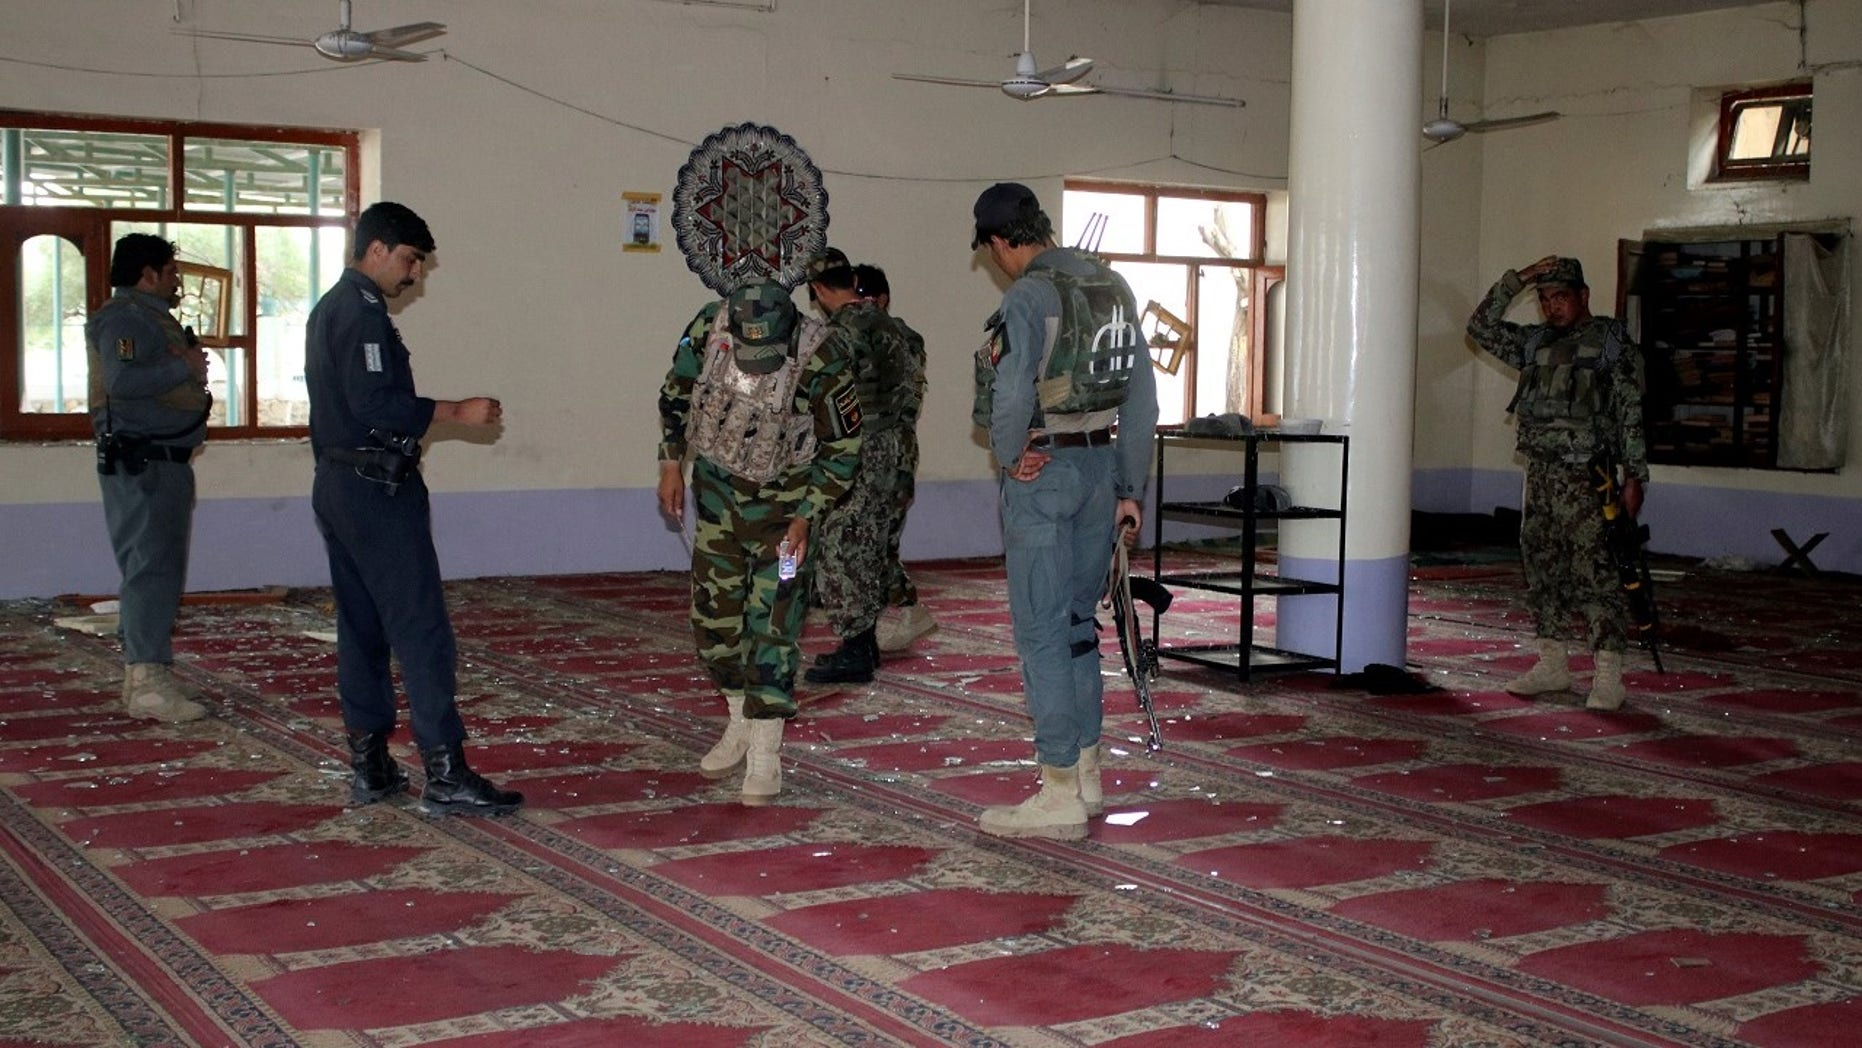 Afghan policemen inspect a mosque after a blast in Khost province.